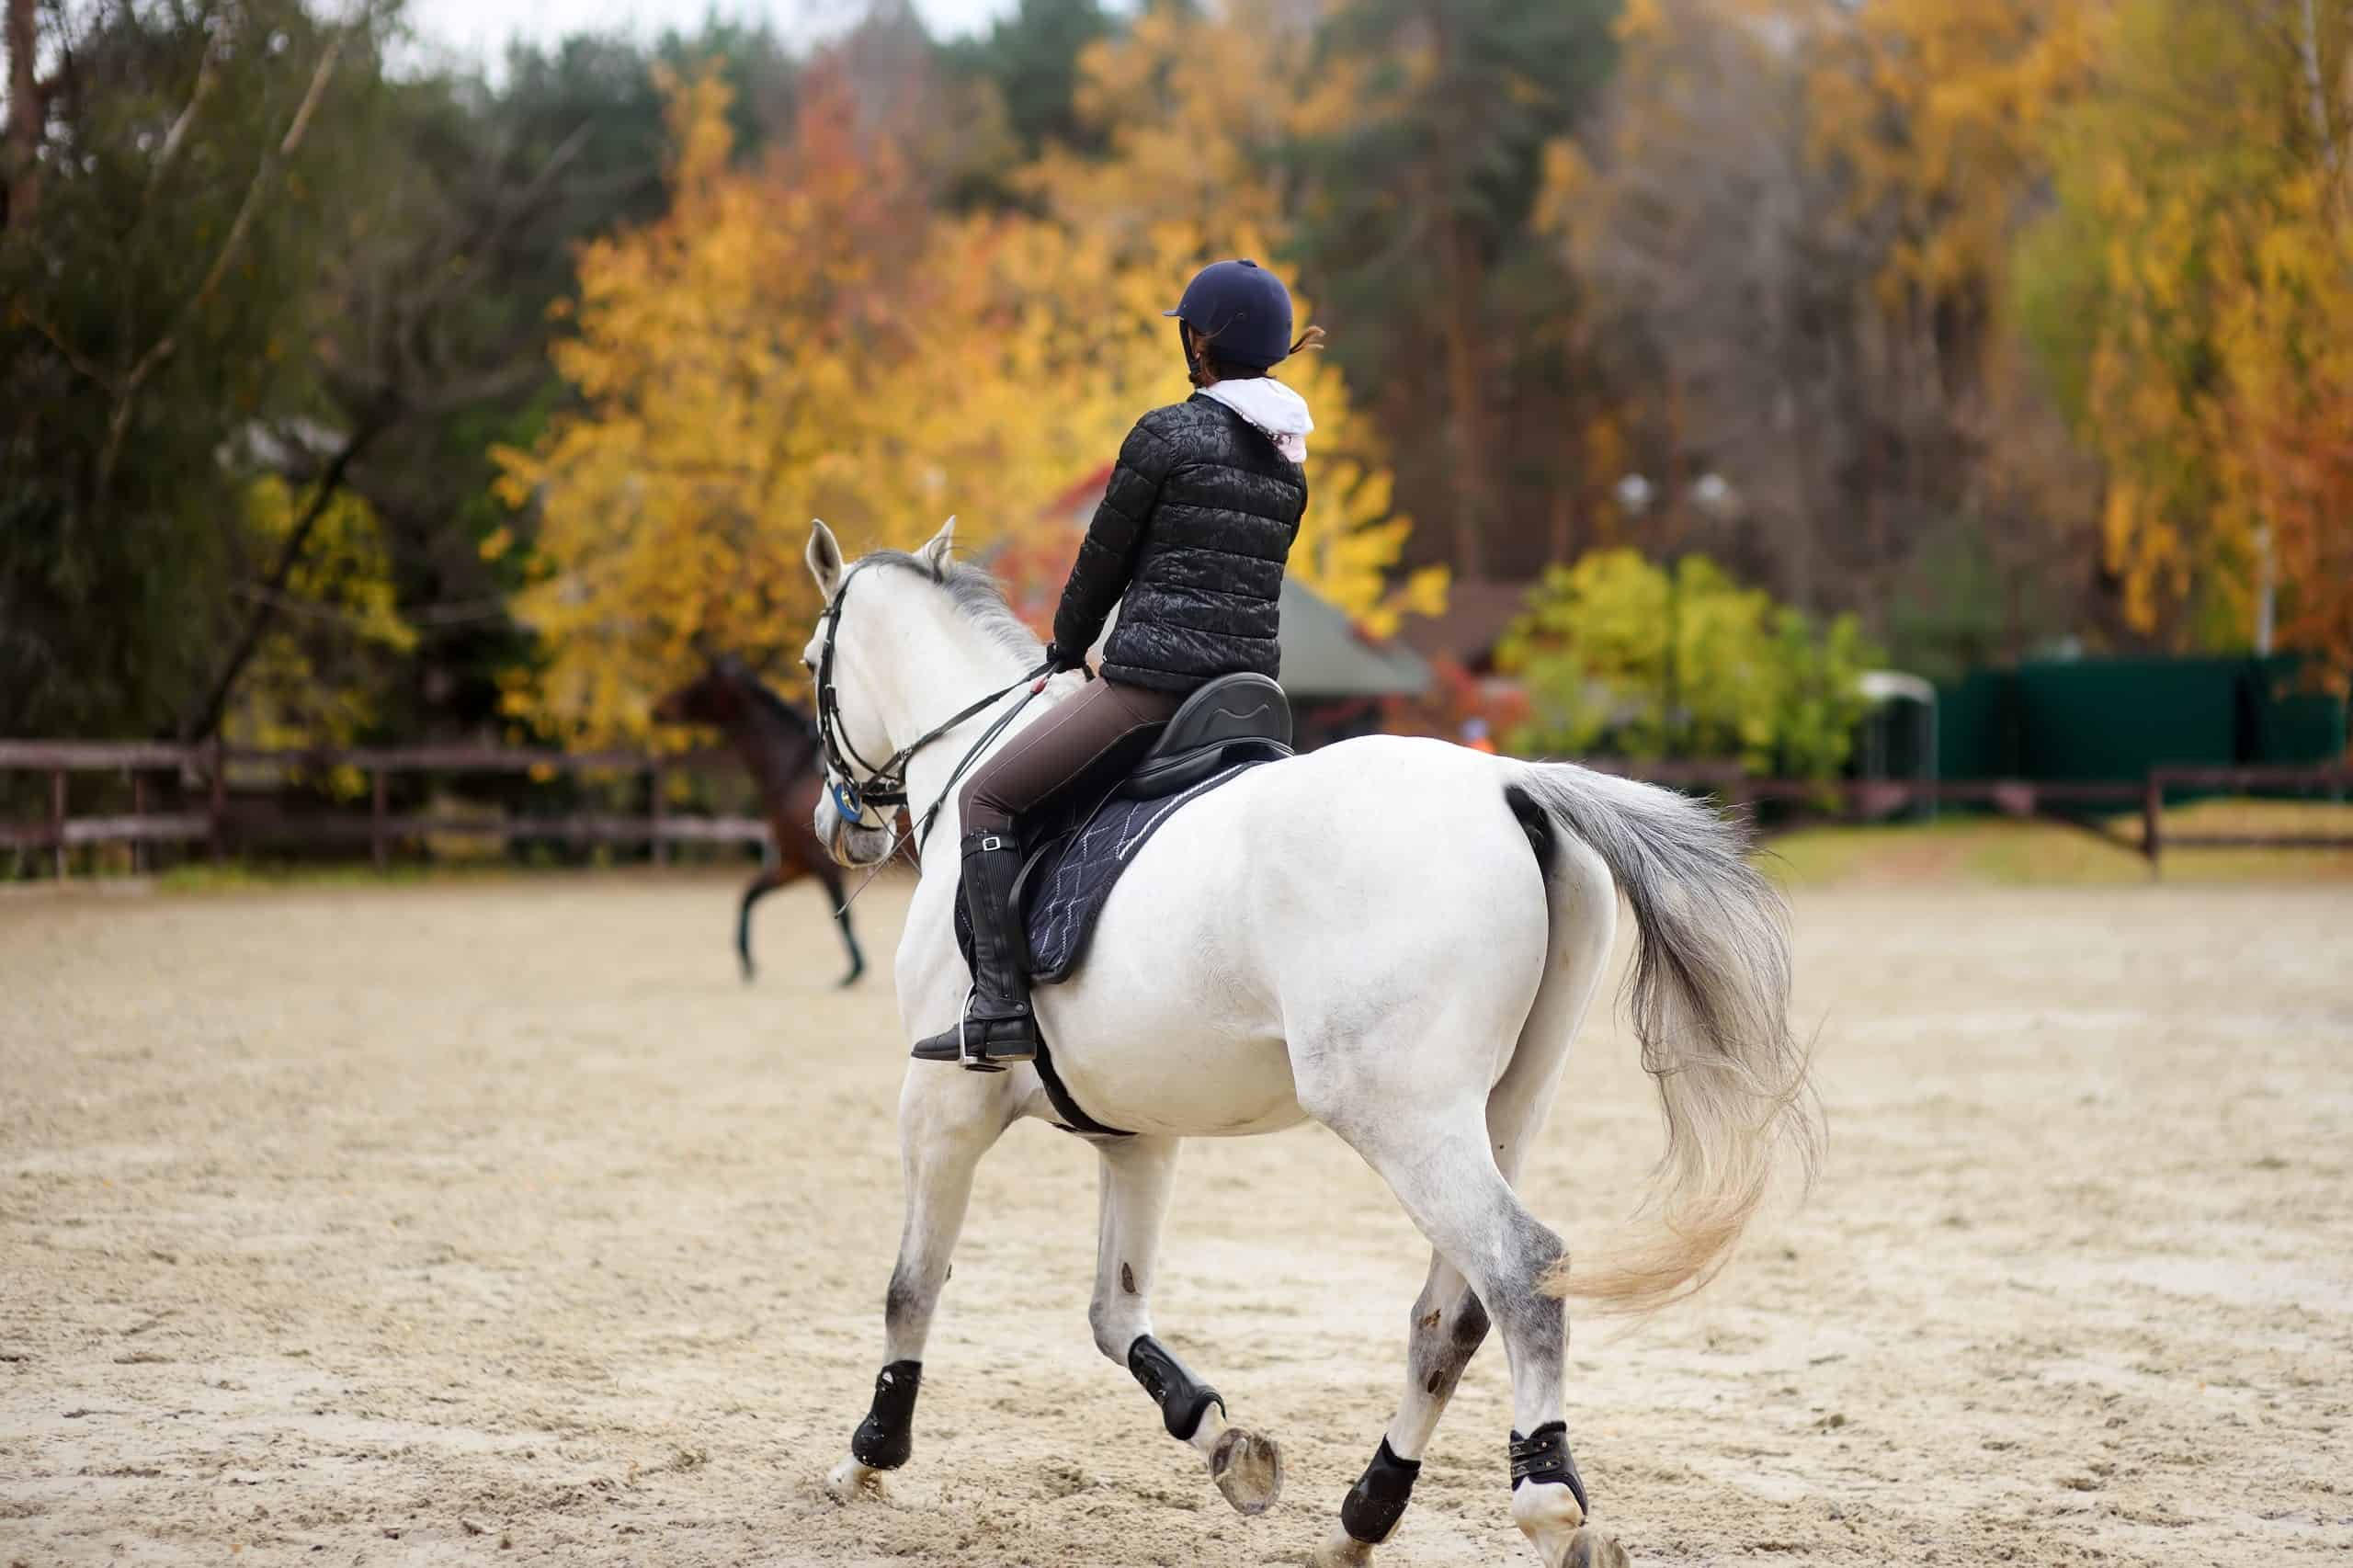 Girl rider trains in horse riding in equestrian club on autumn day. Unusual hobby of urban living.